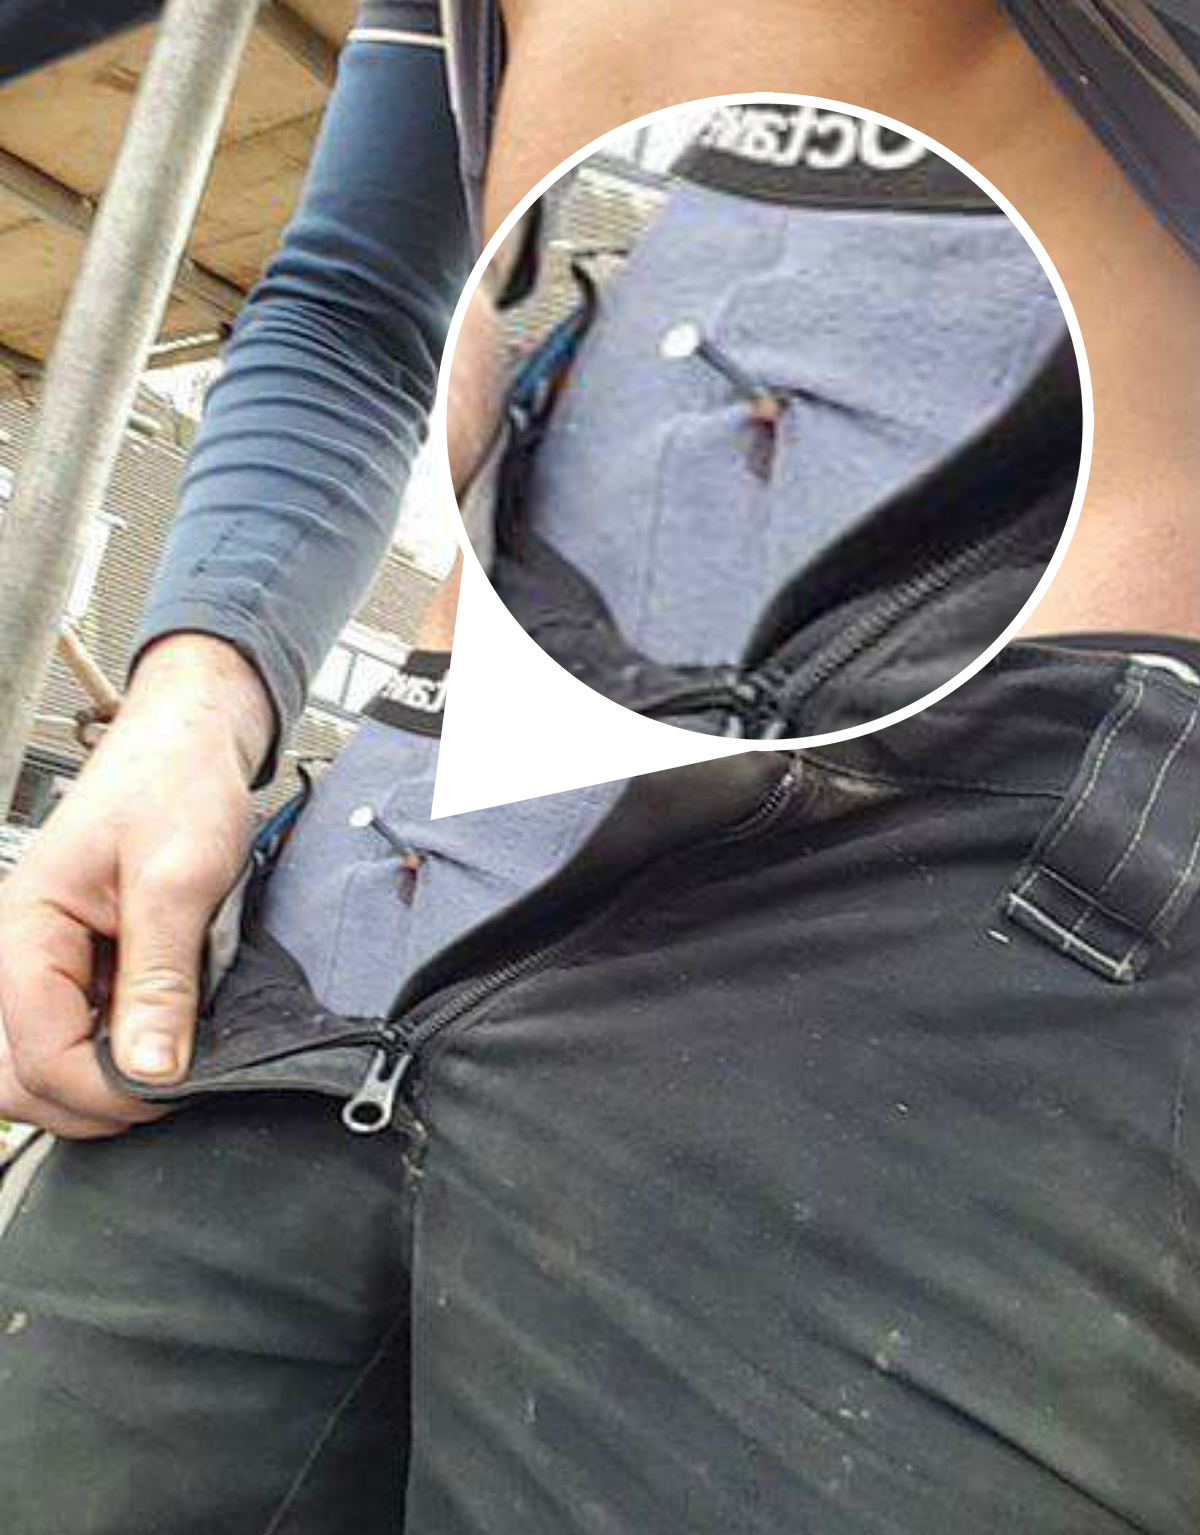 The three and a half inch nail was embedded into his crotch (Picture: Cascade)